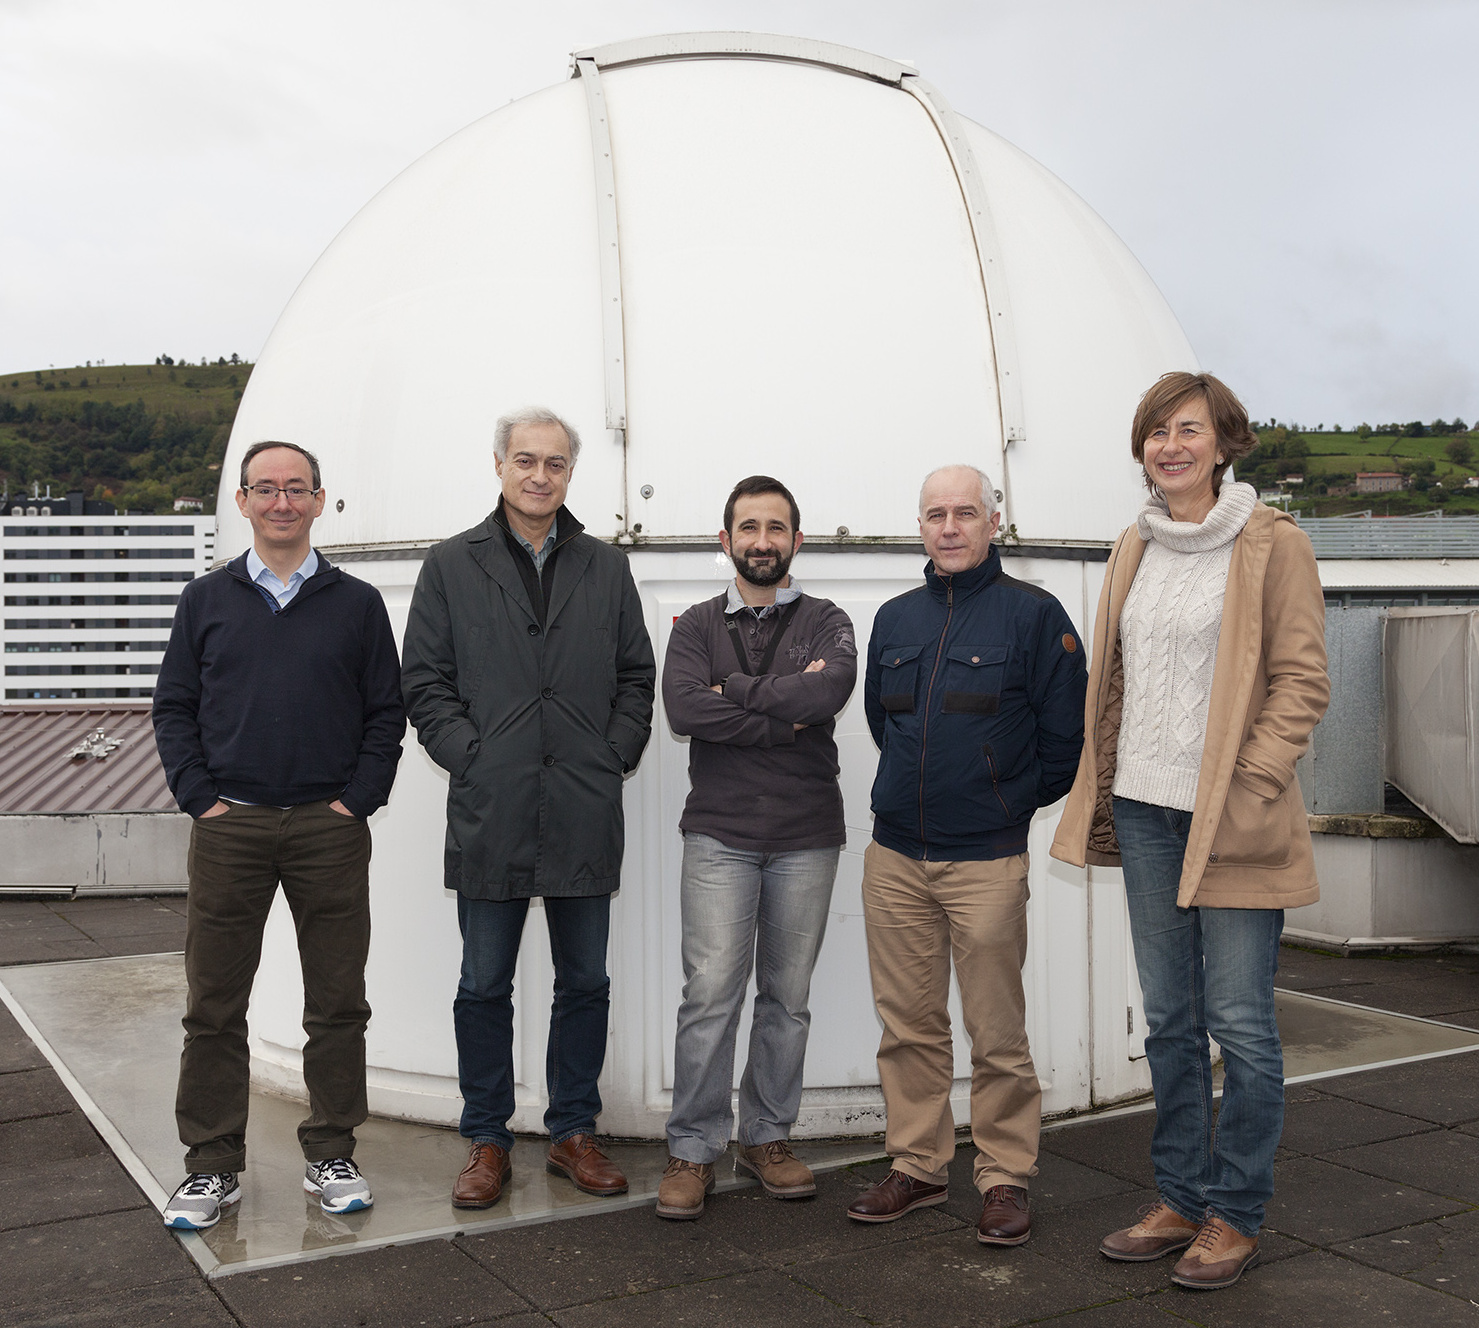 From left to right: Ricardo Hueso, Agustin Sánchez Lavega, Santiago Pérez Hoyos, José Félix Rojas and Teresa del Rio Gaztelurrutia. Image credit: University of the Basque Country.